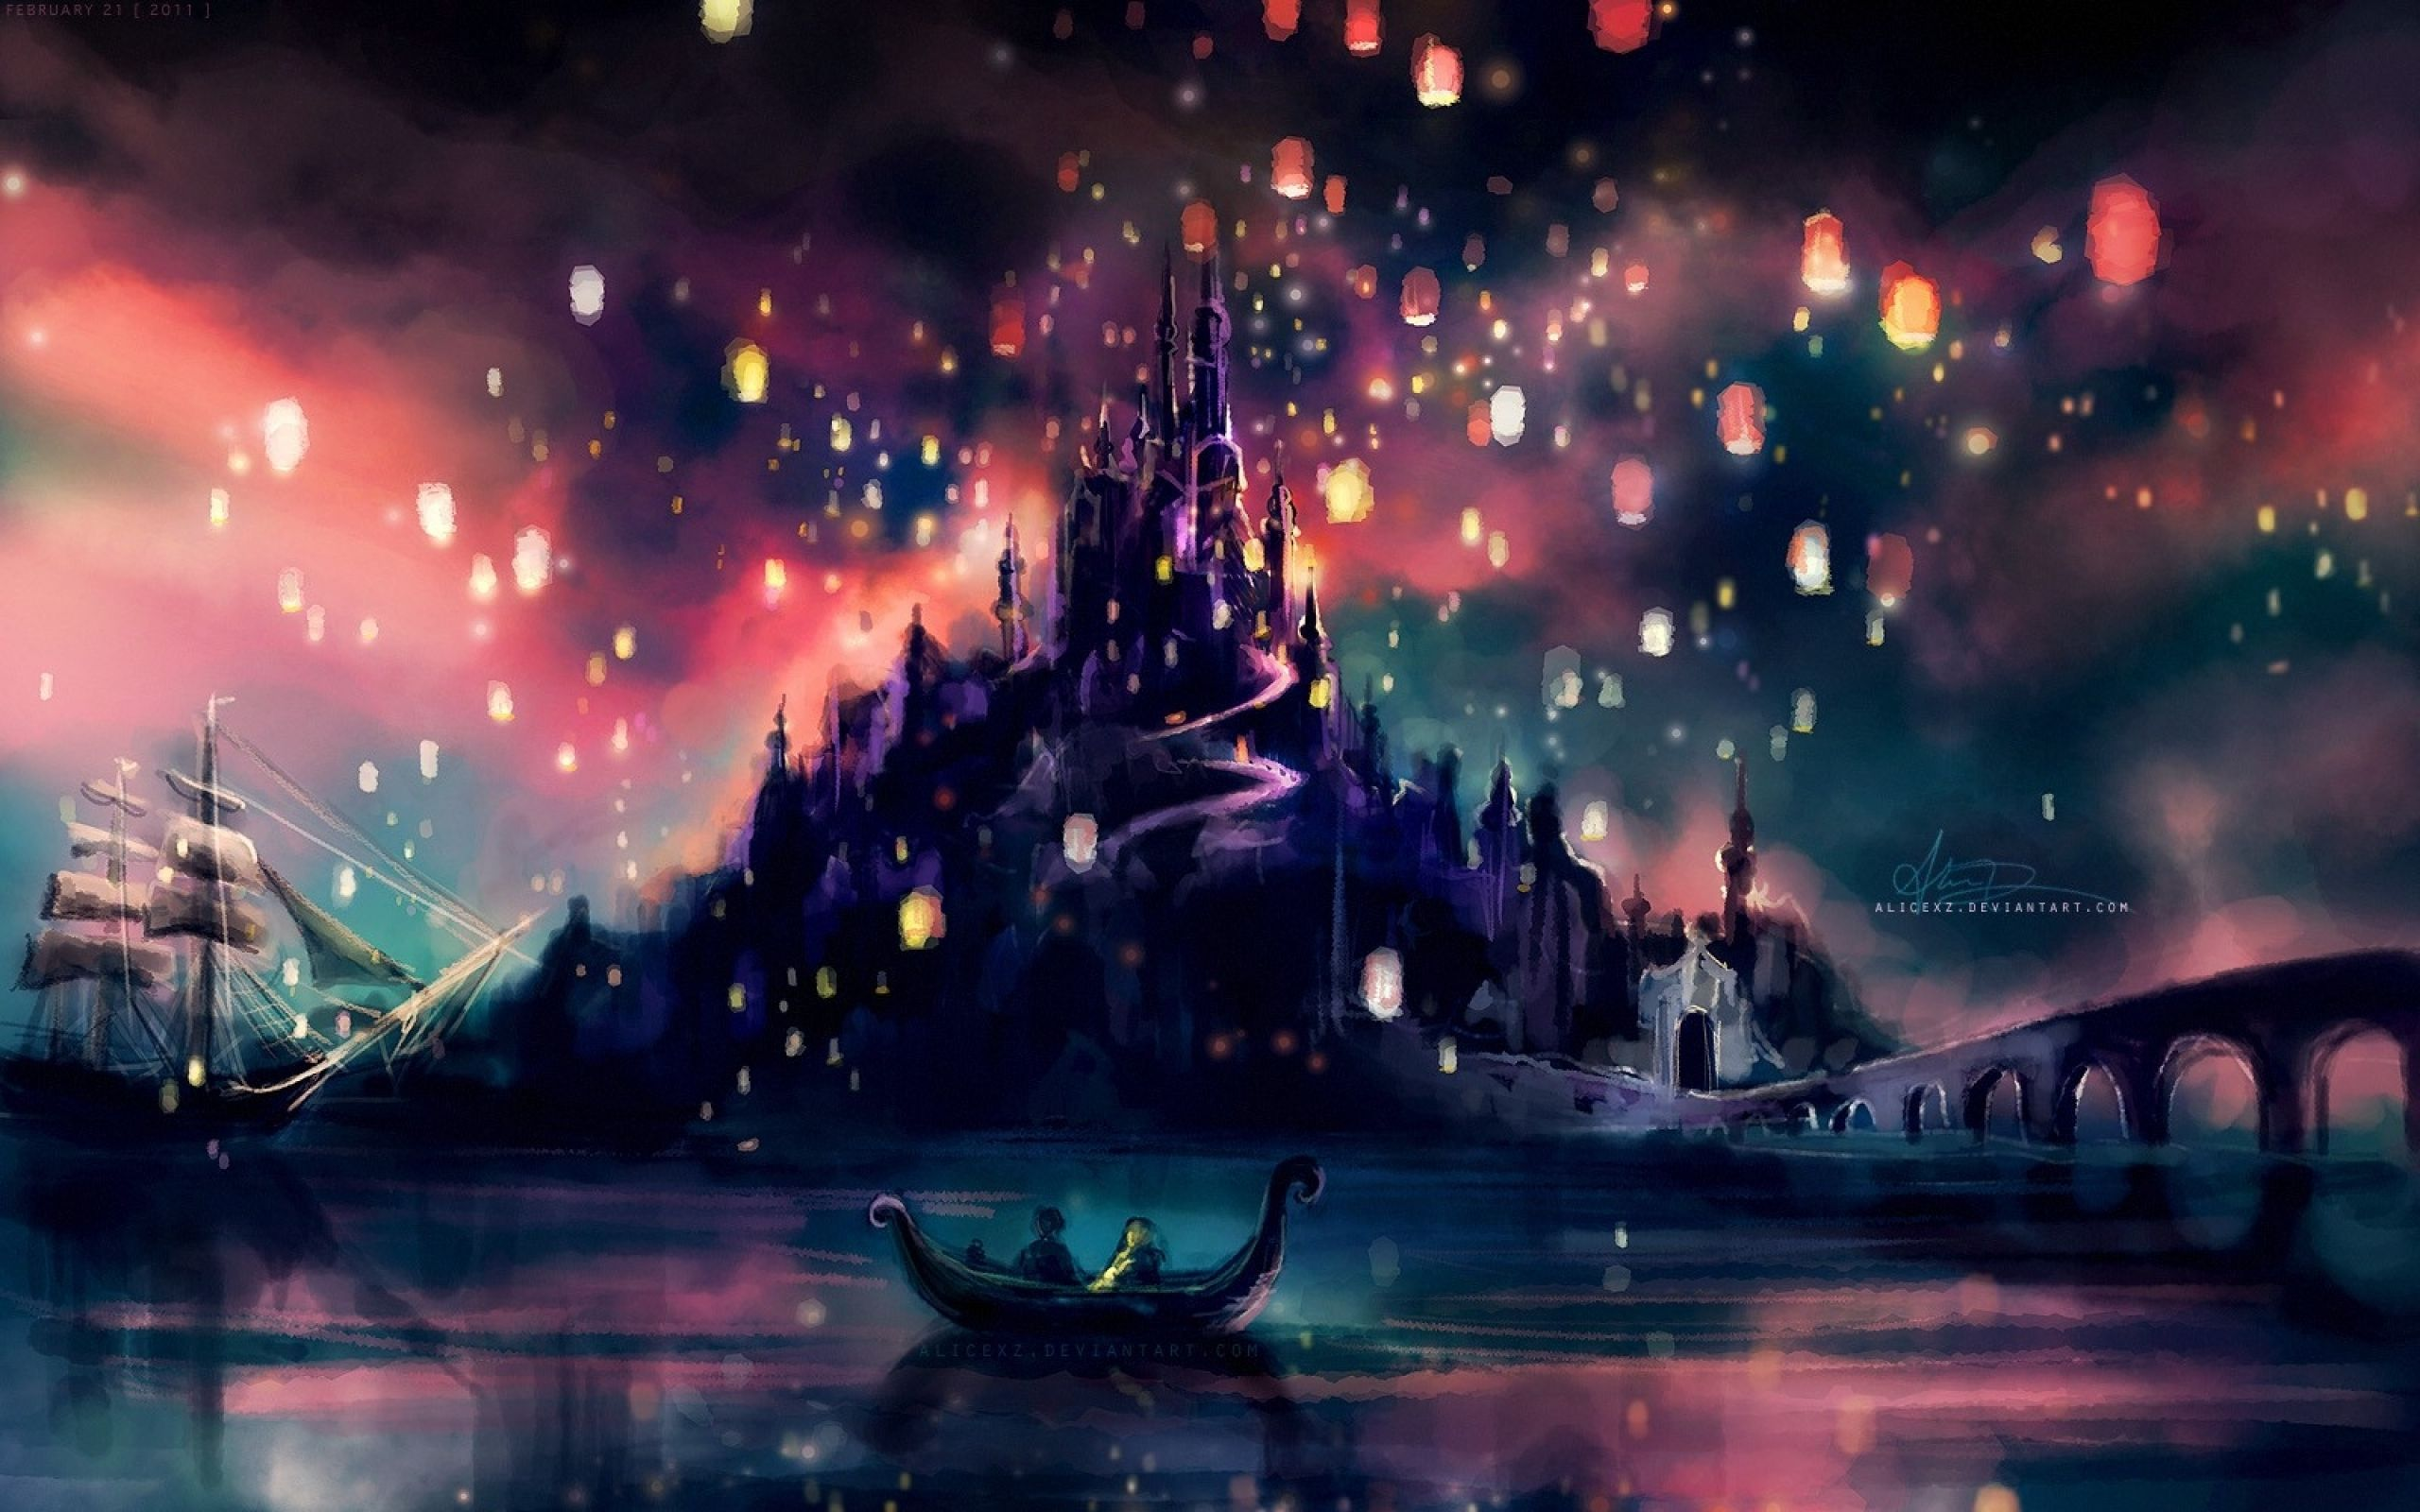 Download Wallpapers Download 2560x1600 Castles Ships Lanterns Fantasy Art Tangled Rapunzel Artwork Alice X Zhan Disney Tangled Disney Wallpaper Tangled Castle